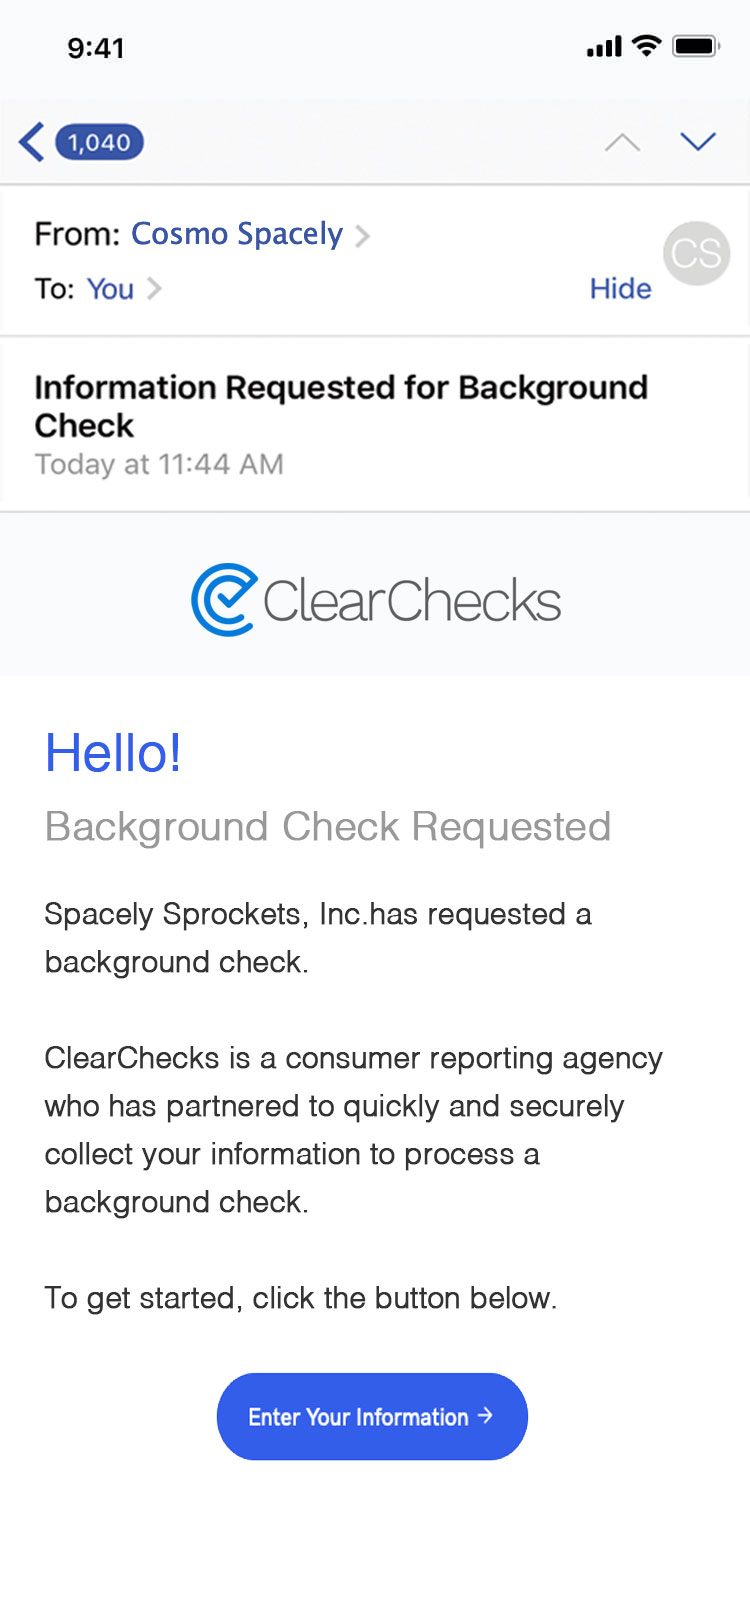 ClearChecks - Background Checks for Employers  MVR